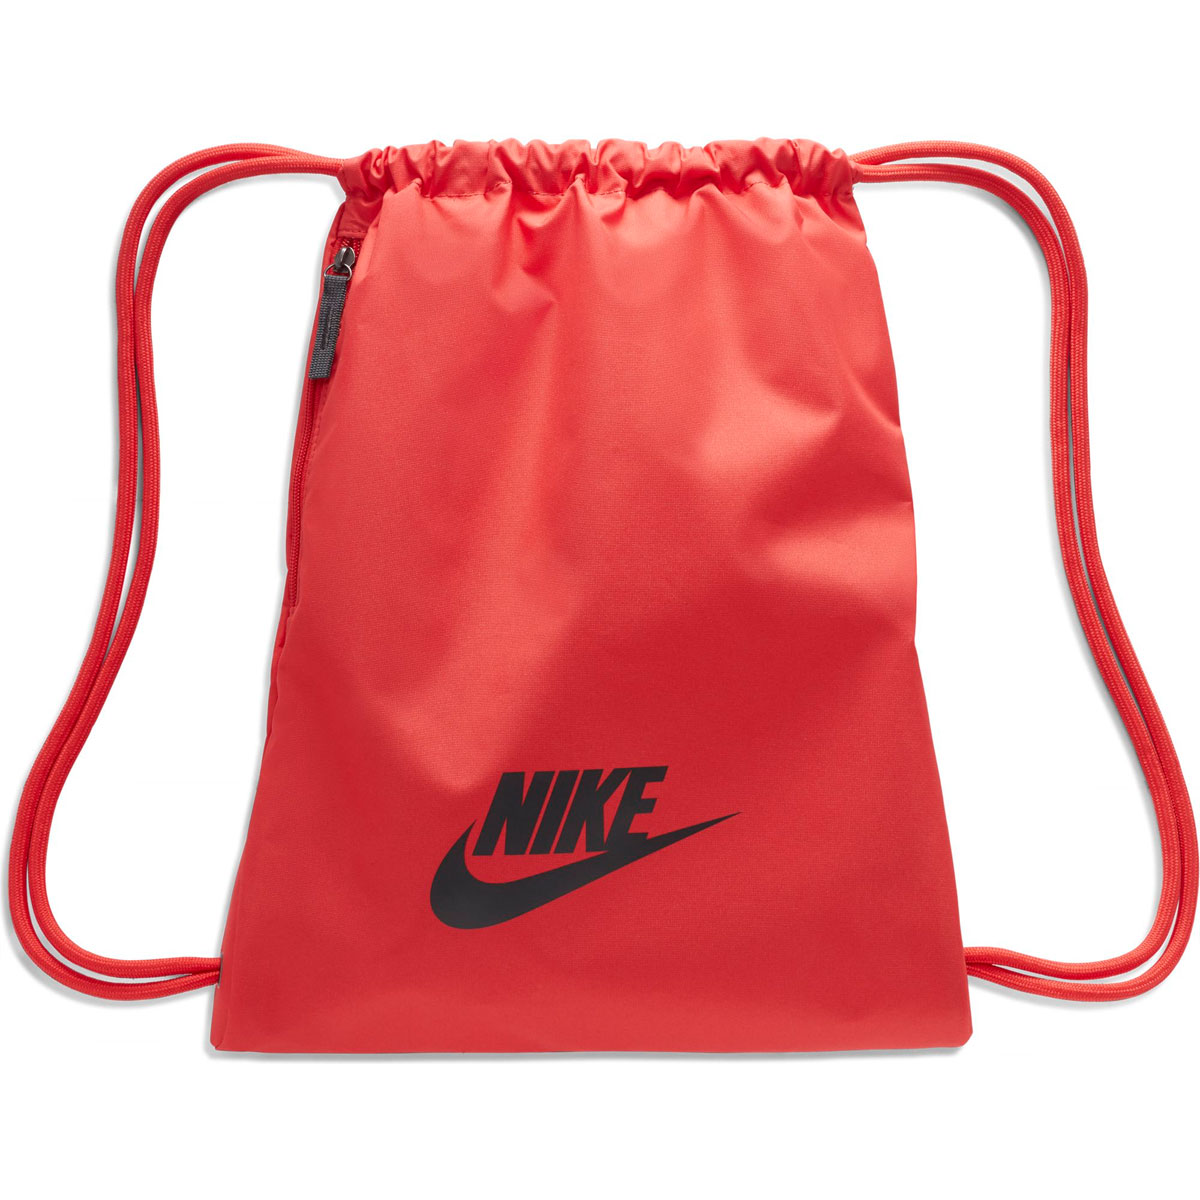 Heritage 2.0 Gymsack, Red/Gray, swatch